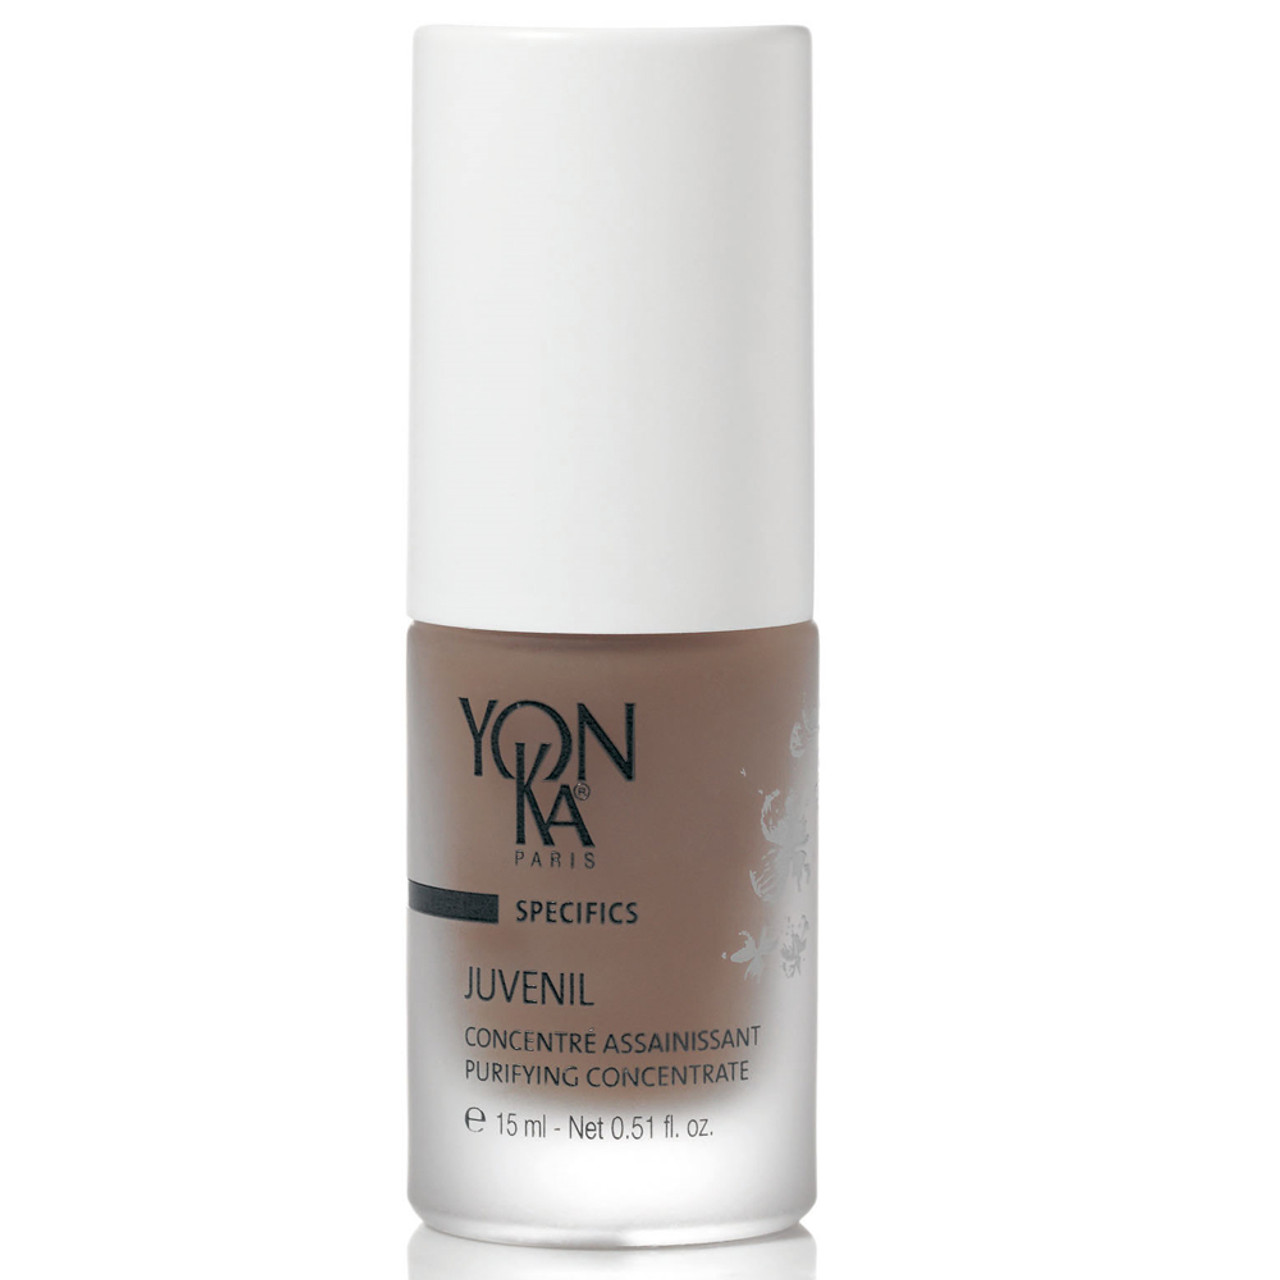 YonKa Juvenil Purifying Concentrate